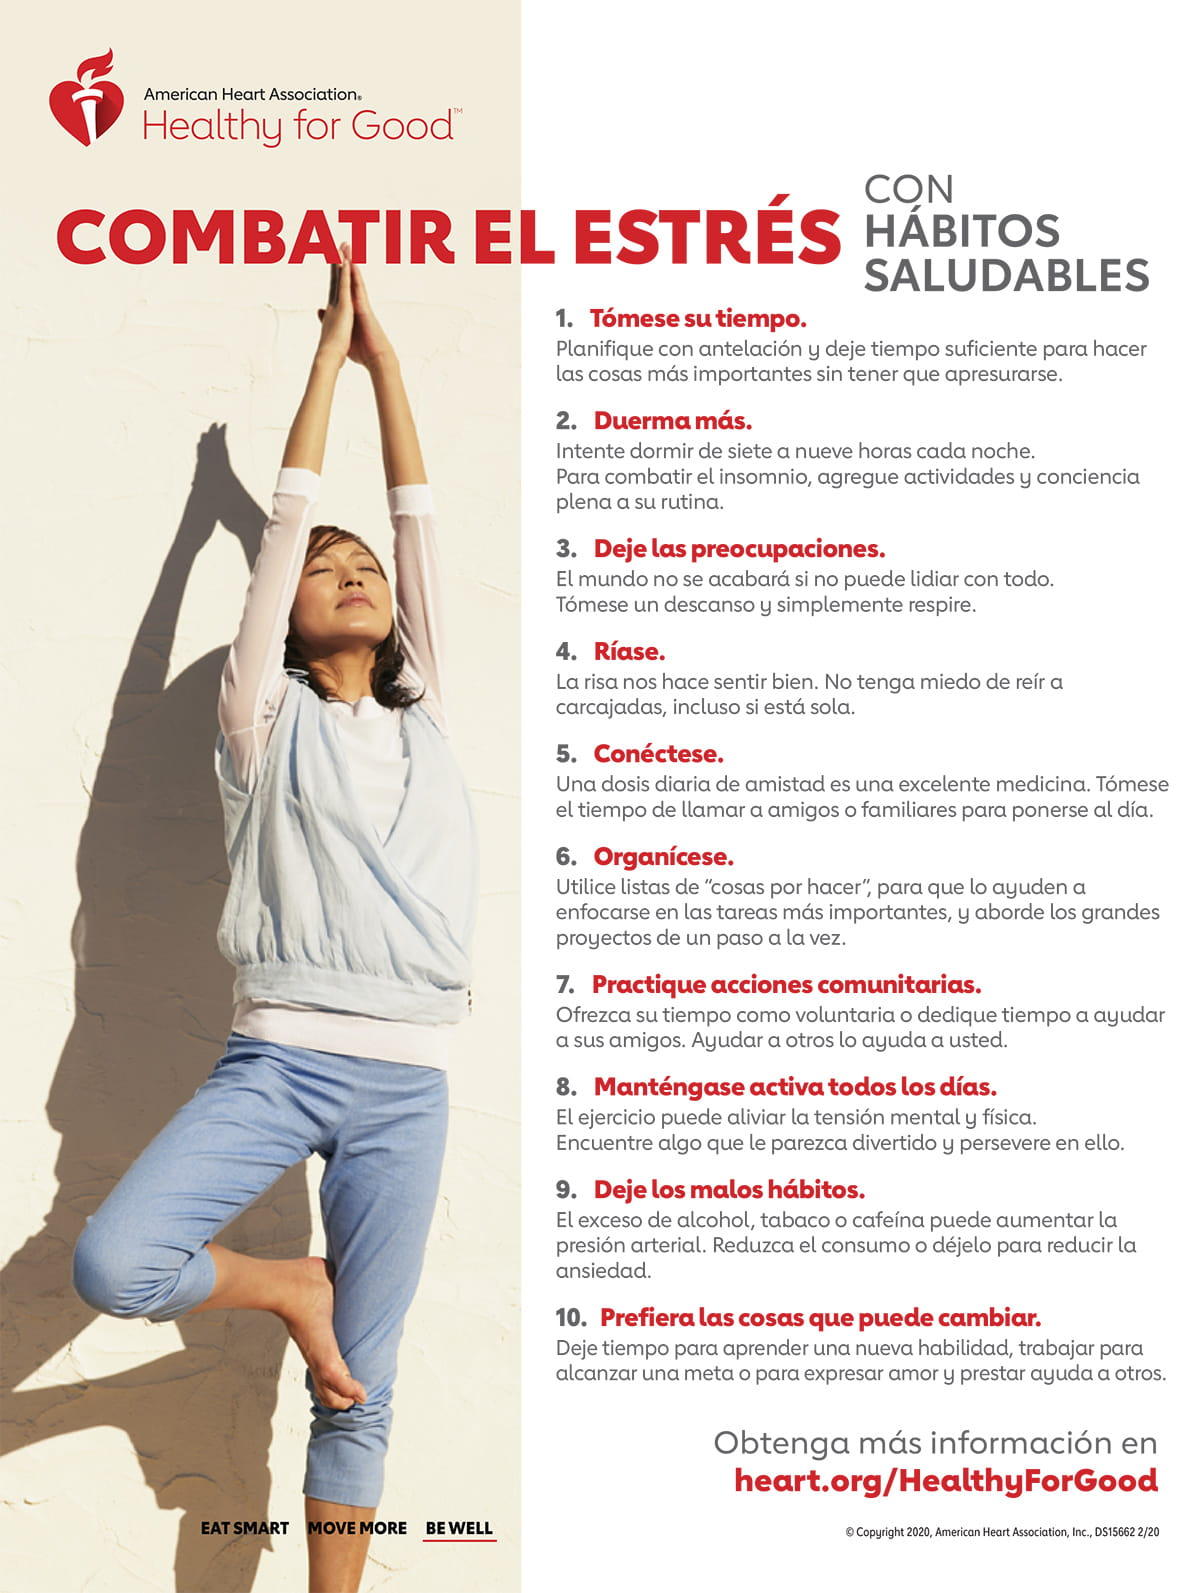 Fight stress with healthy habits infographic in Spanish